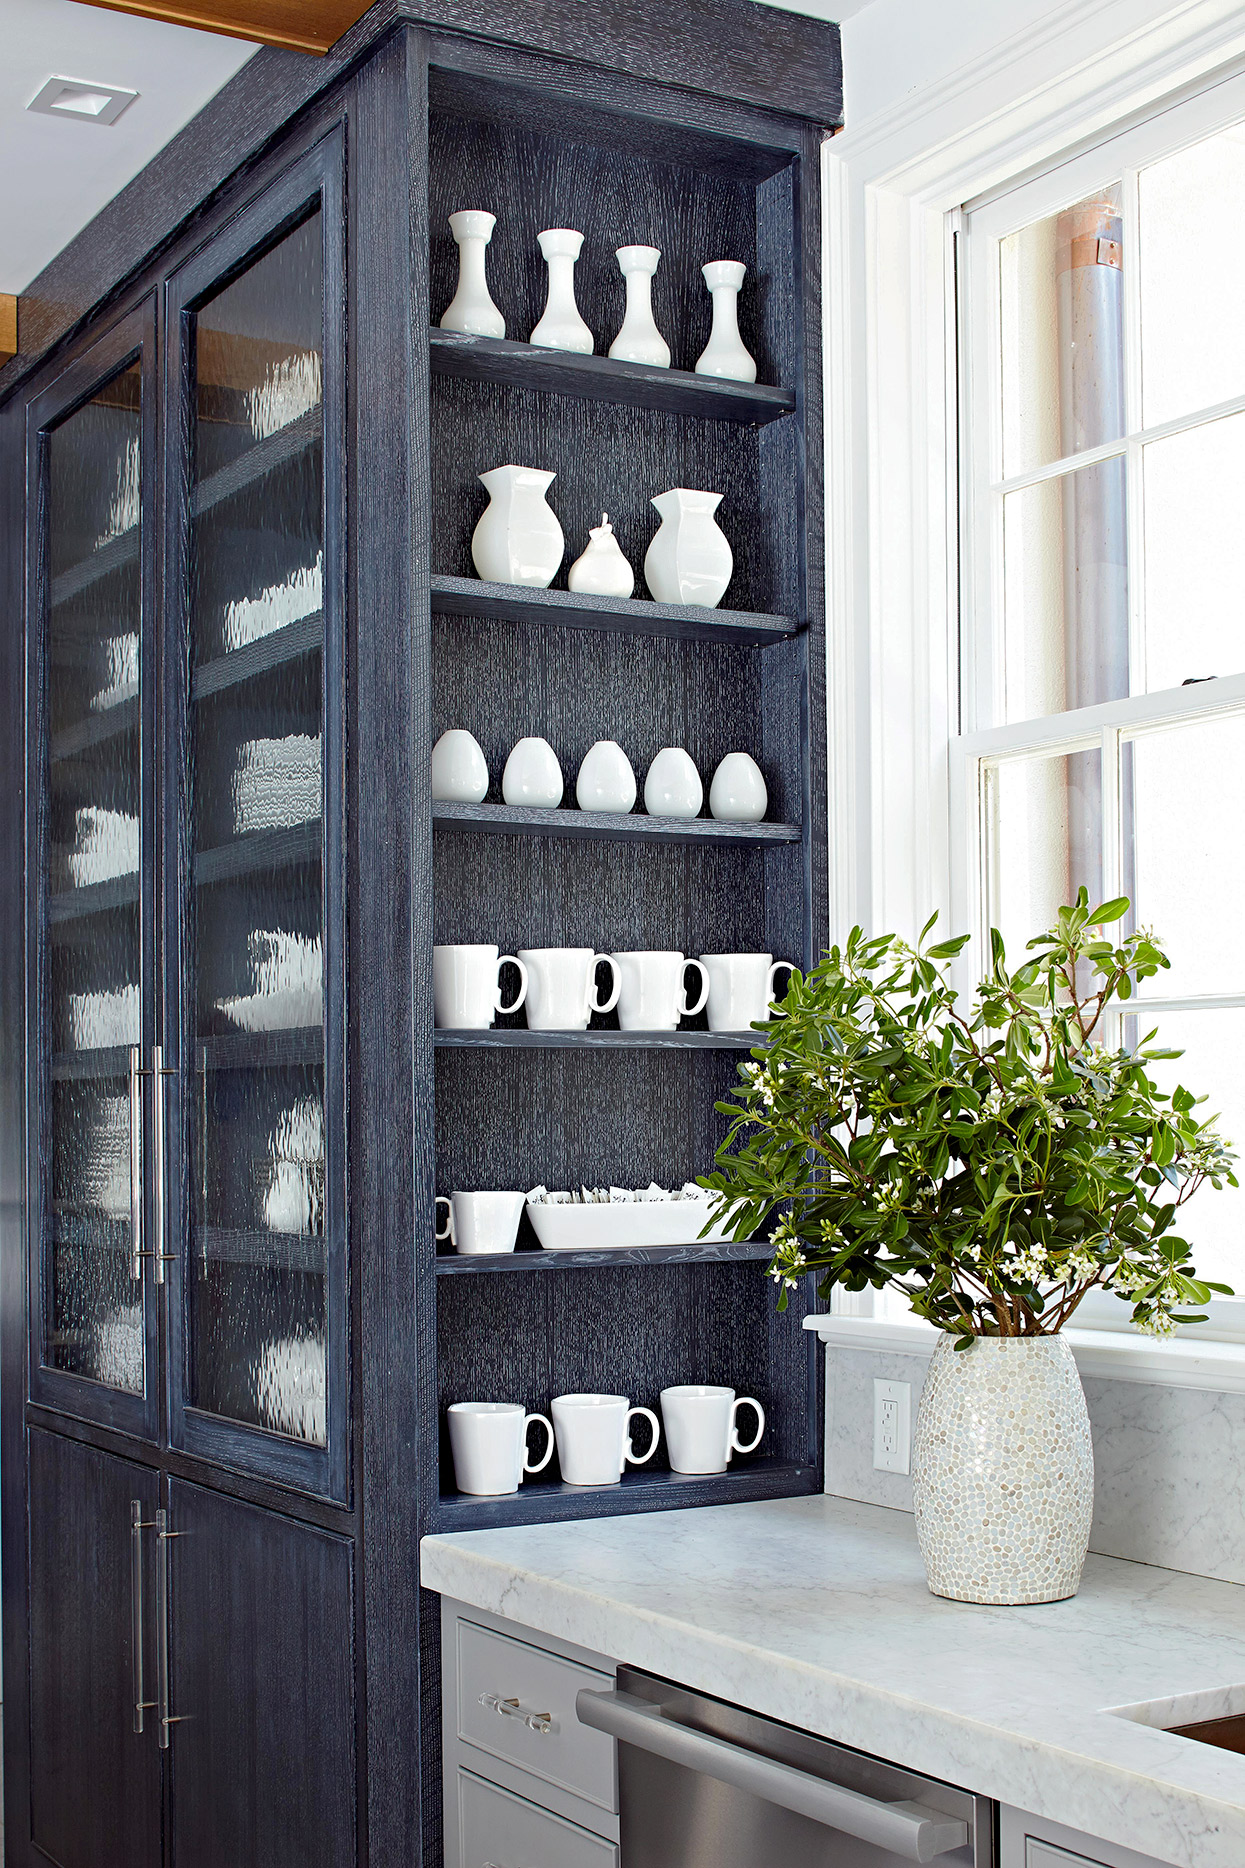 black cabinet in kitchen with shelves displaying uniform white dishes